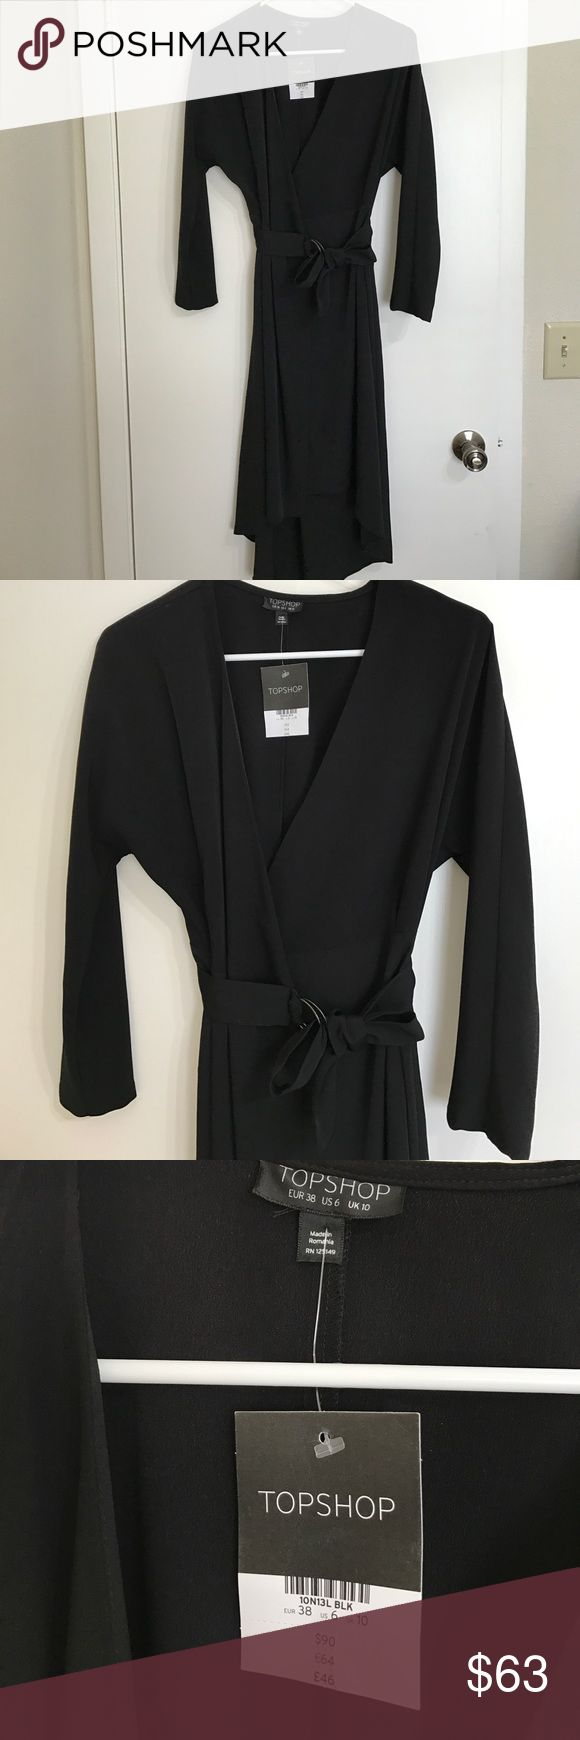 TOPSHOP BLACK WRAP DRESS Black. Belt to wrap around. Very nice for business casual settings. No trades. FINAL PRICE. Topshop Dresses Midi